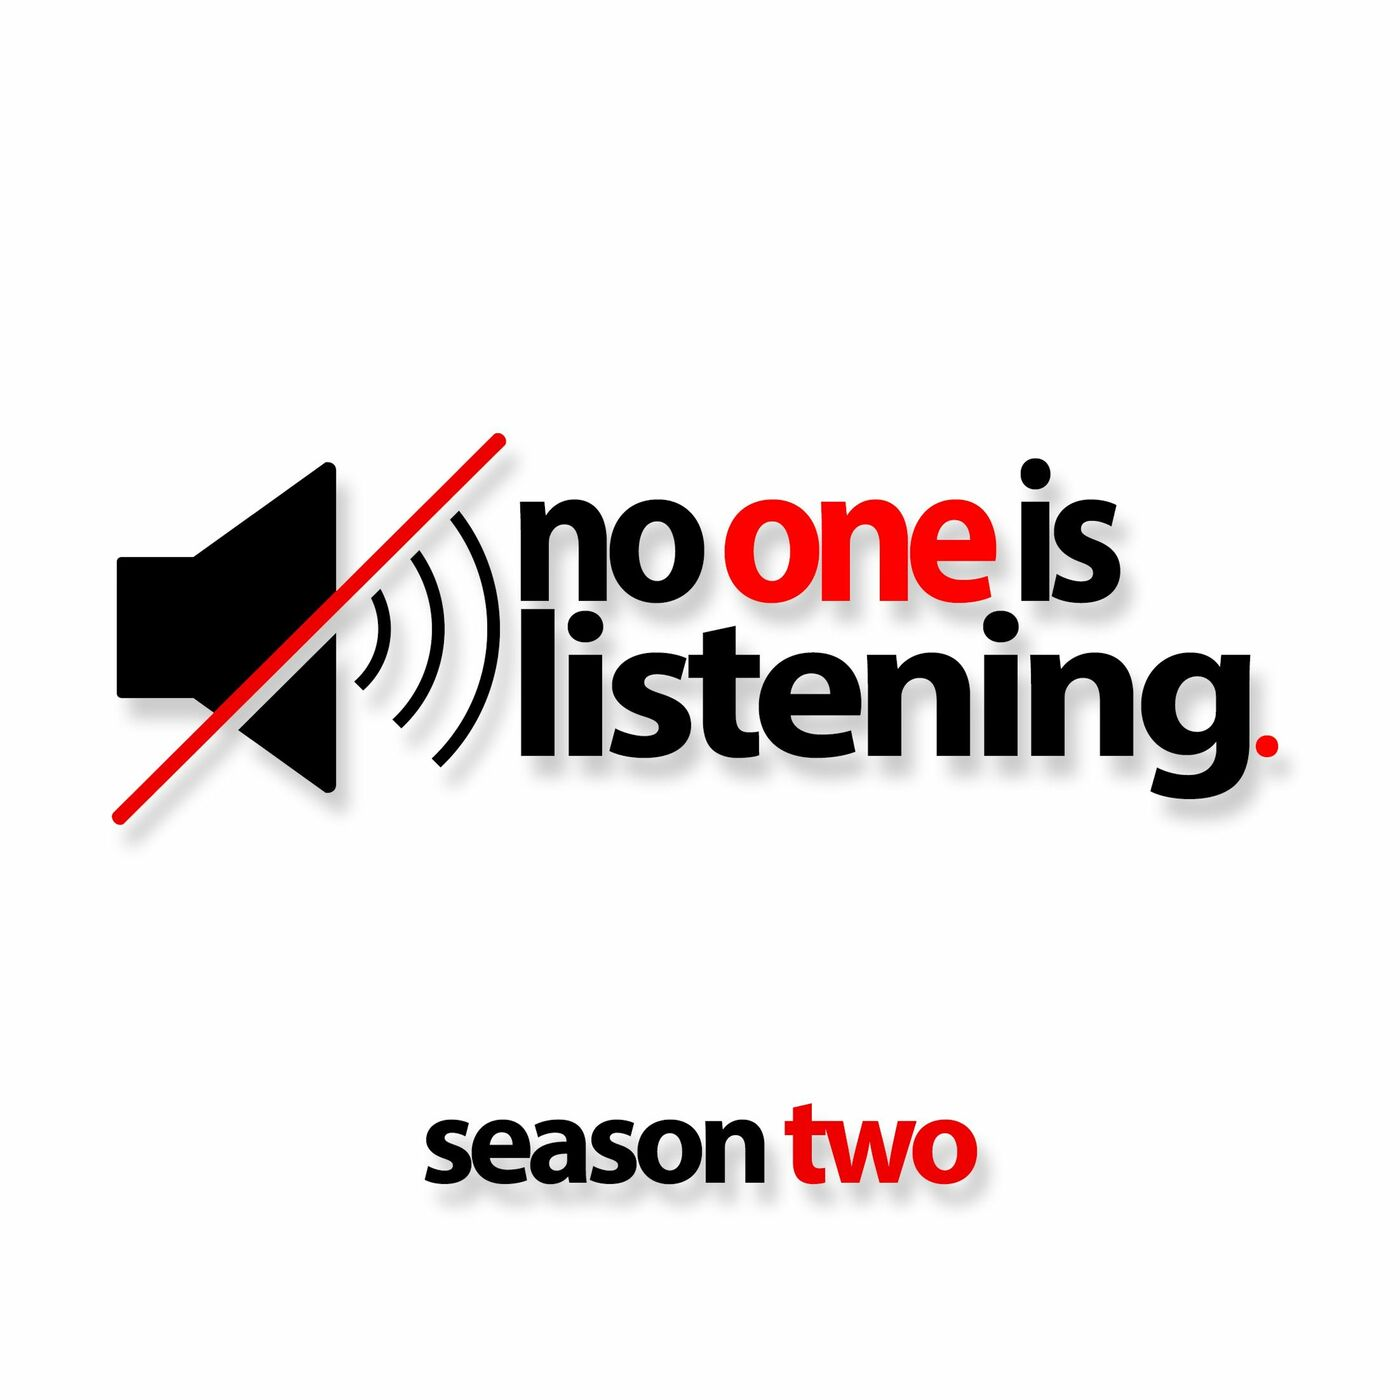 No One is Listening: Season 2 is Upon Us!!!